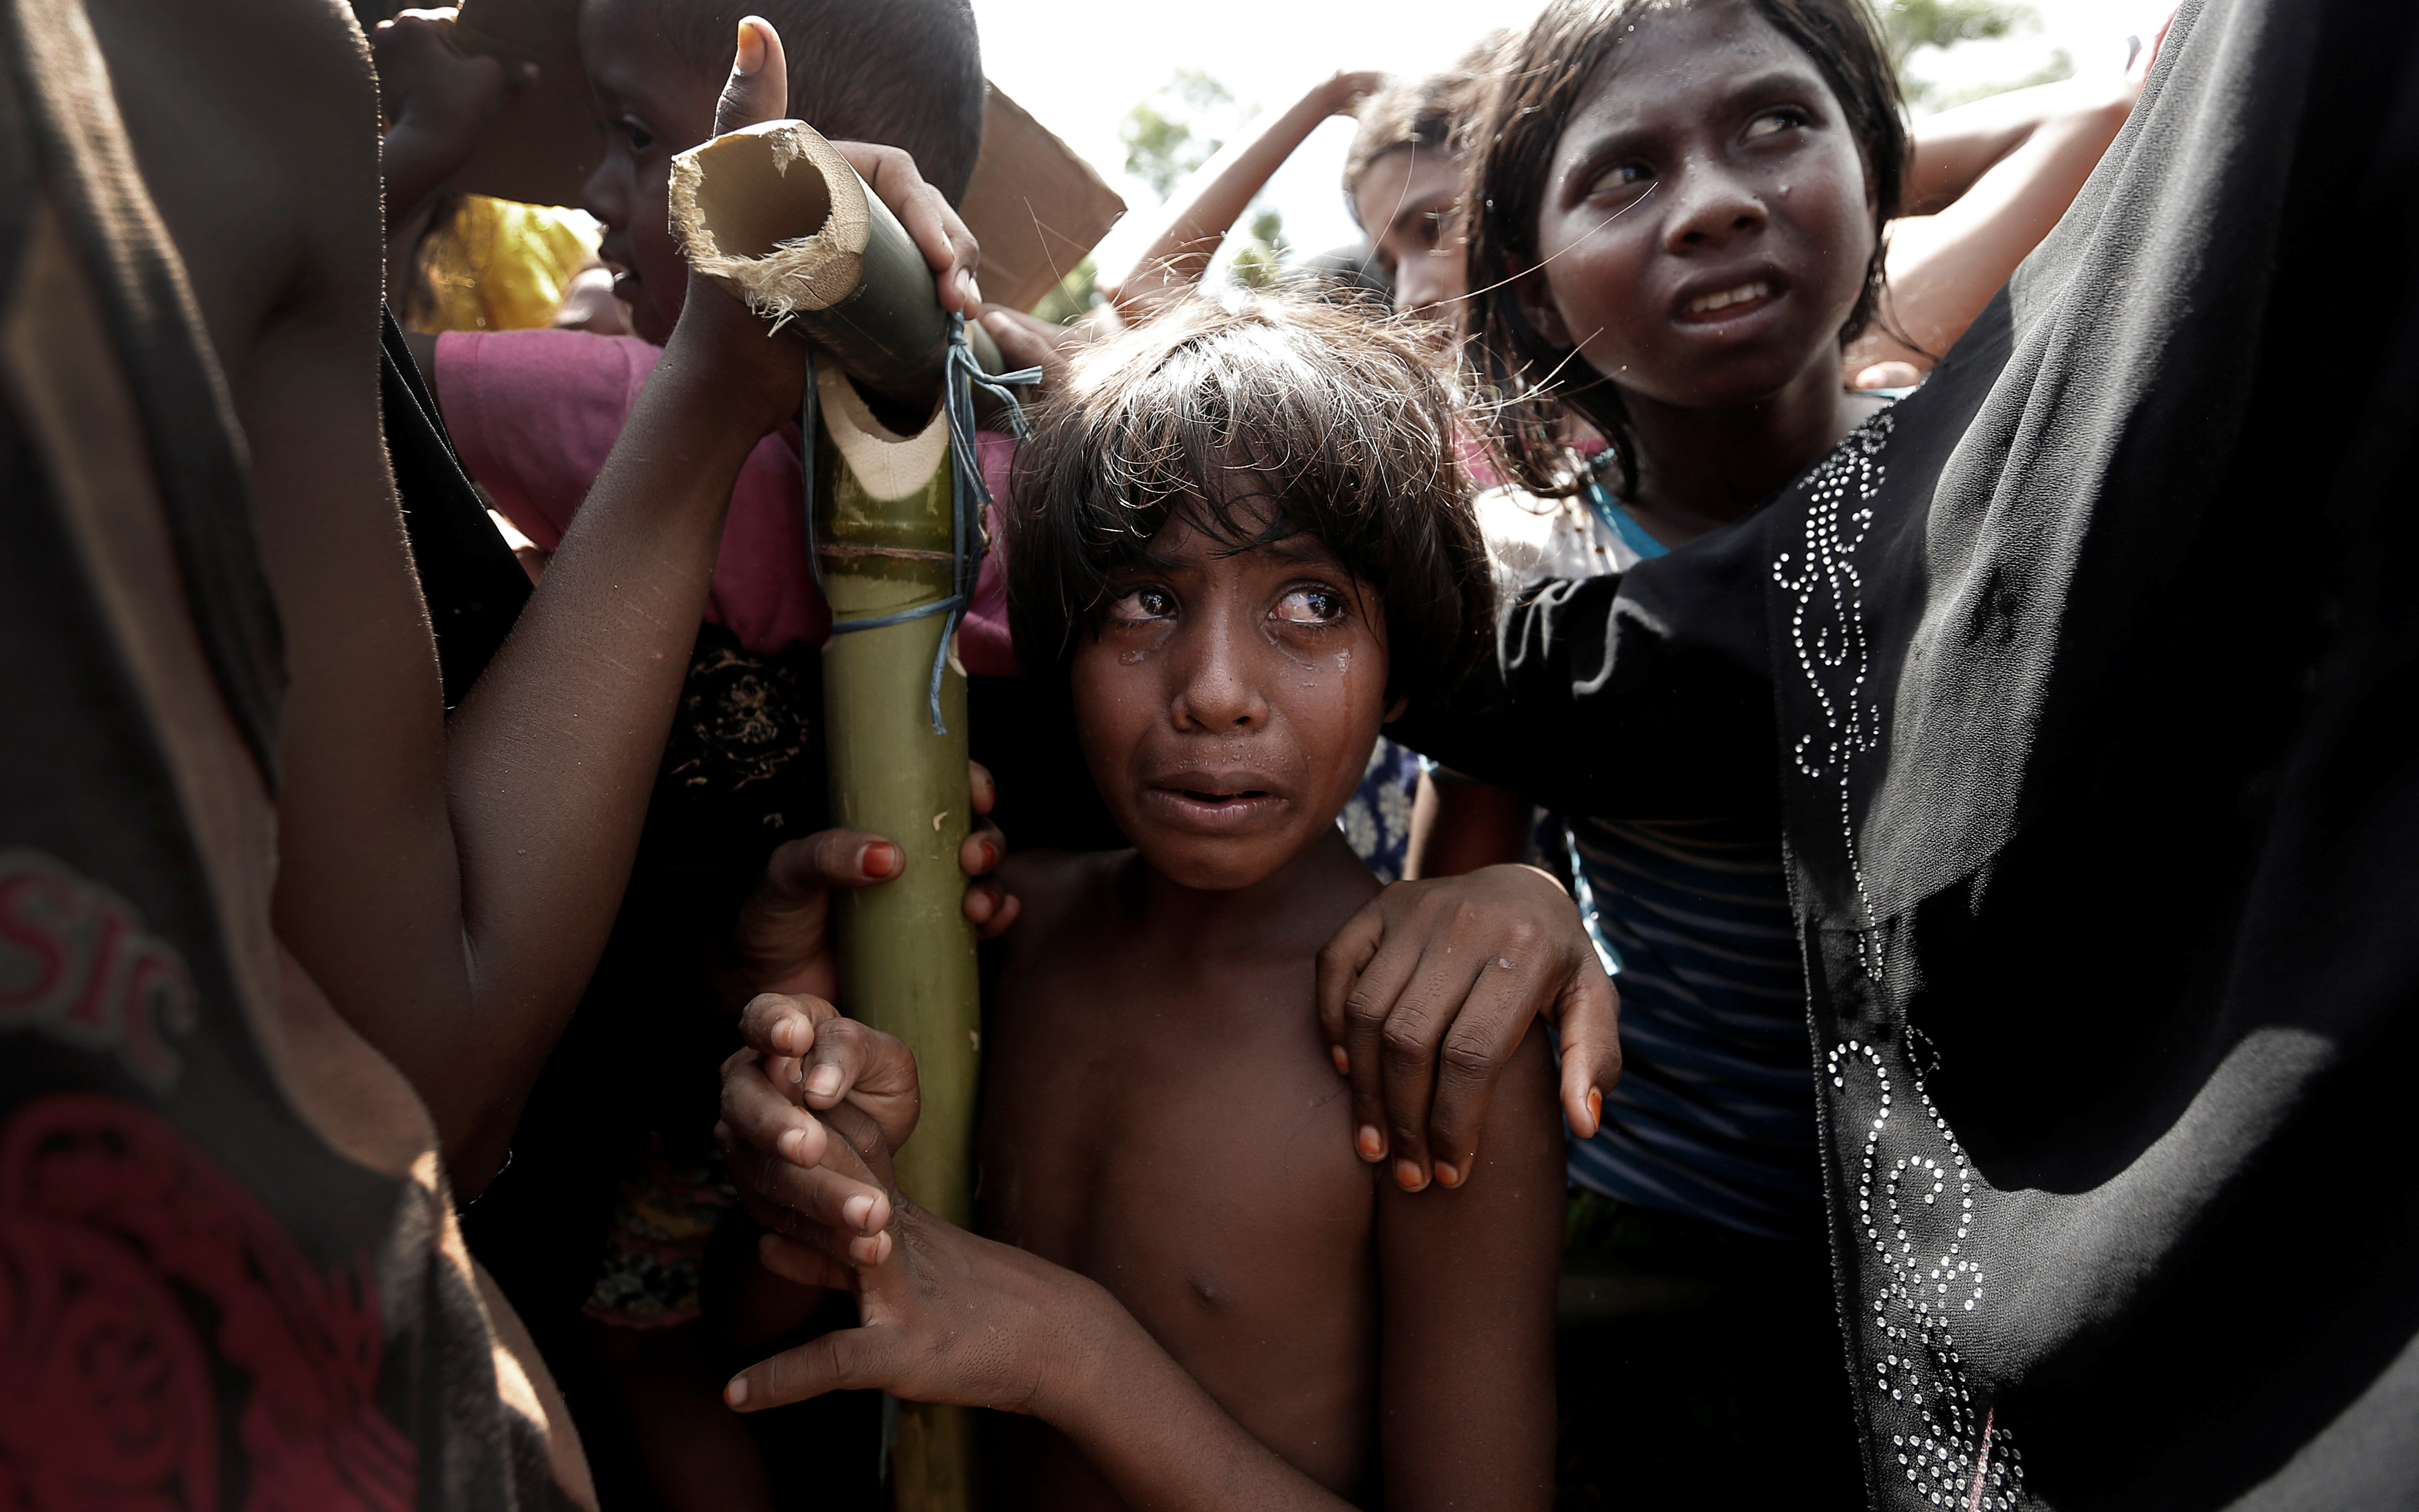 A Rohingya refugee girl reacts as people scuffle while waiting to receive aid in Cox's Bazar, Bangladesh, September 25, 2017.